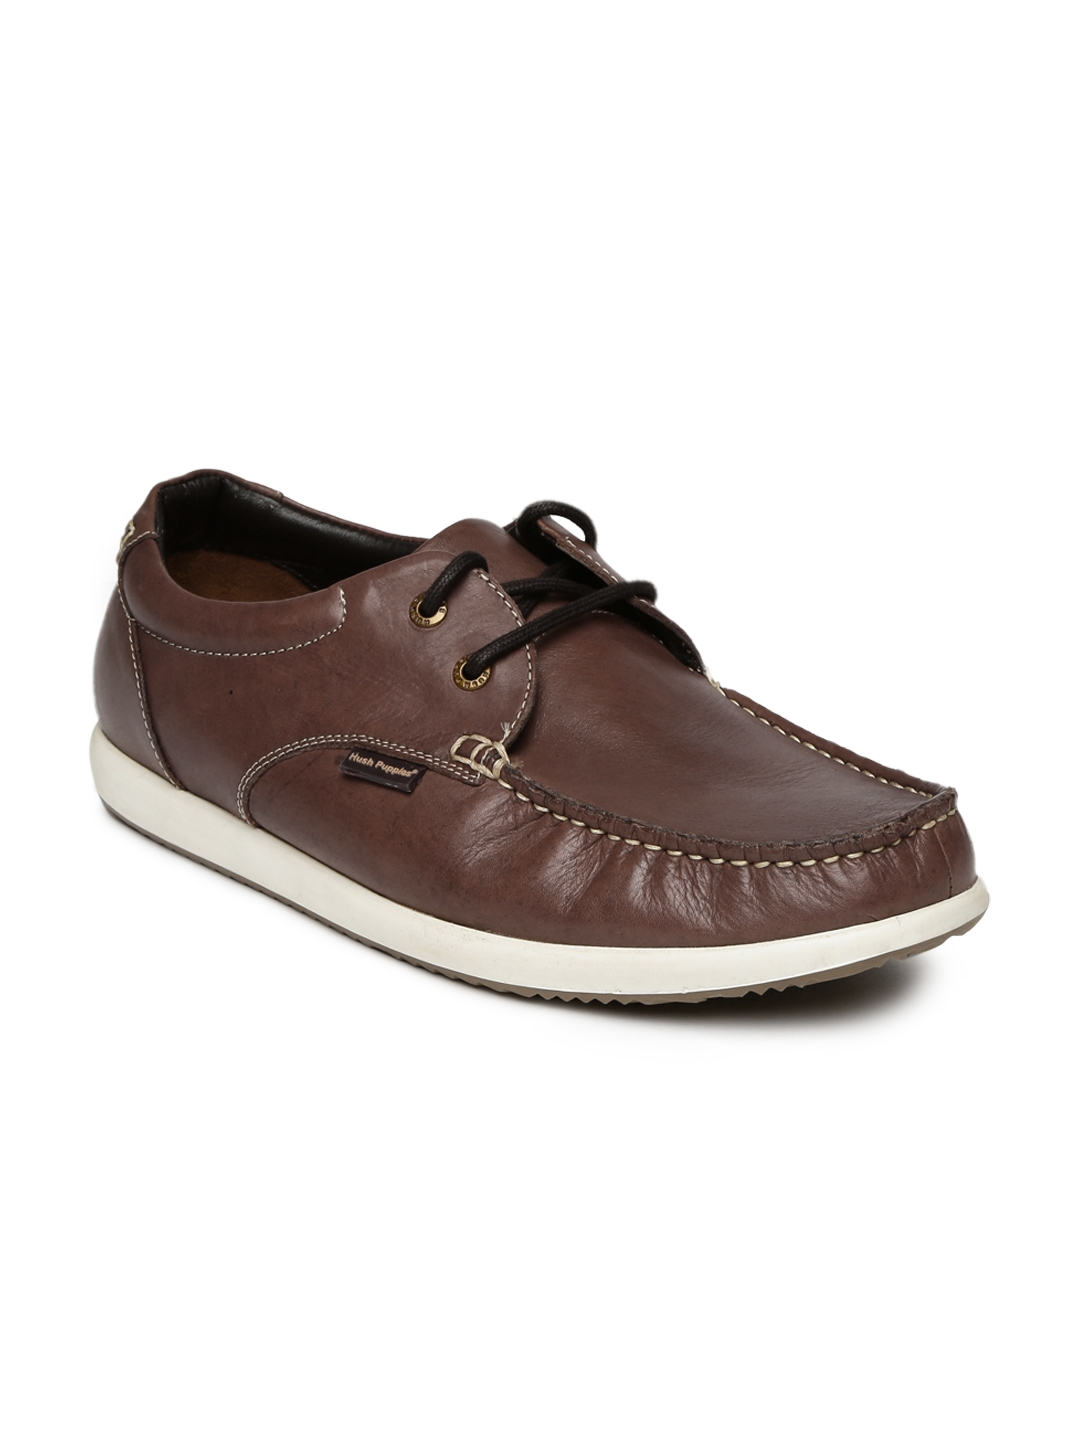 13c69b8d28 Buy Hush Puppies By Bata Men Brown Leather Casual Shoes - Casual ...